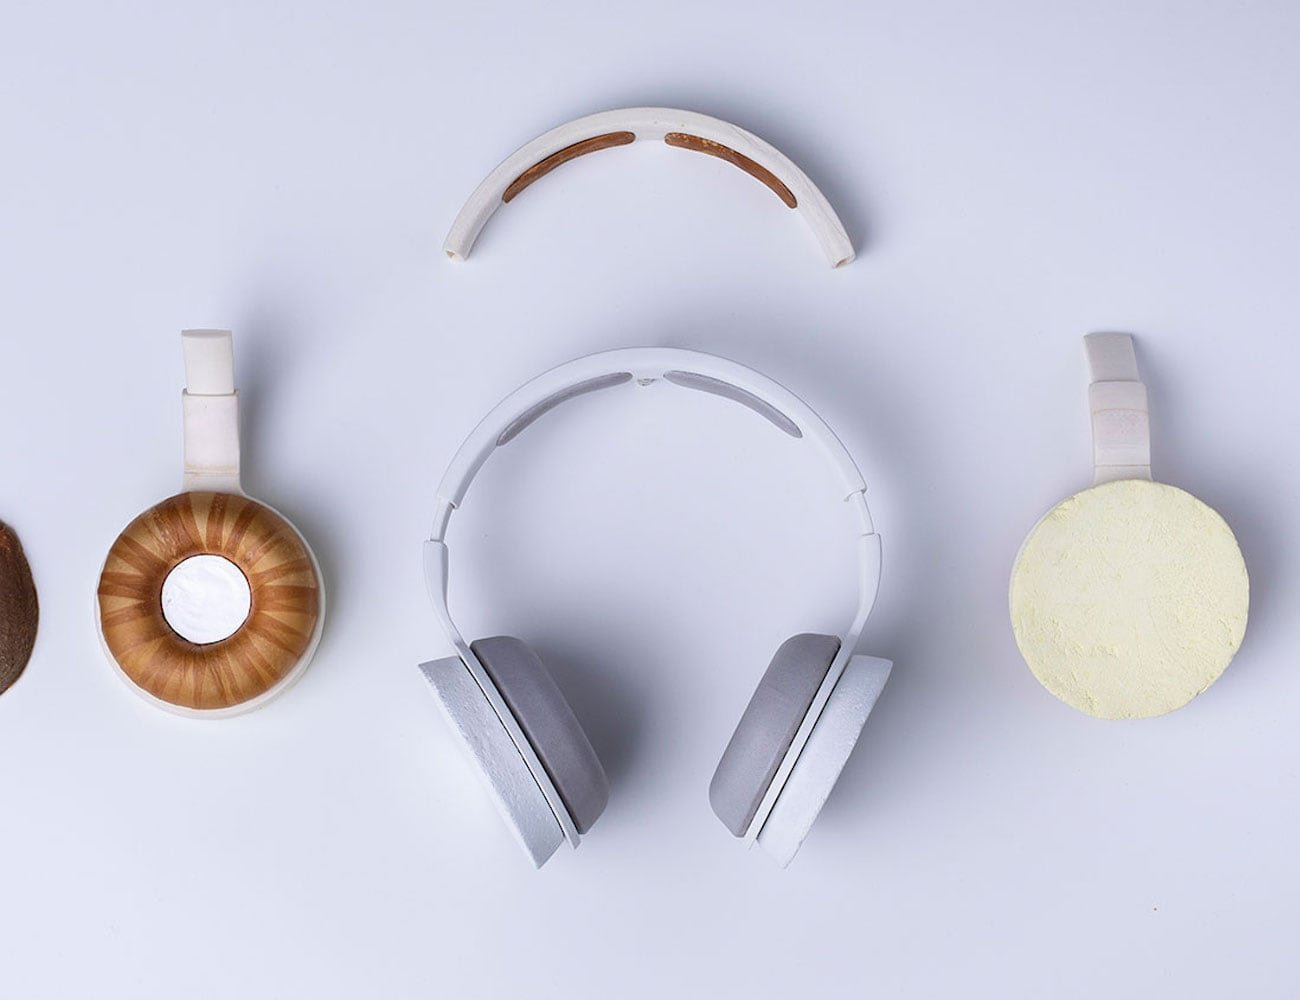 Korvaa Microbe-Grown Headset gives you a living pair of headphones